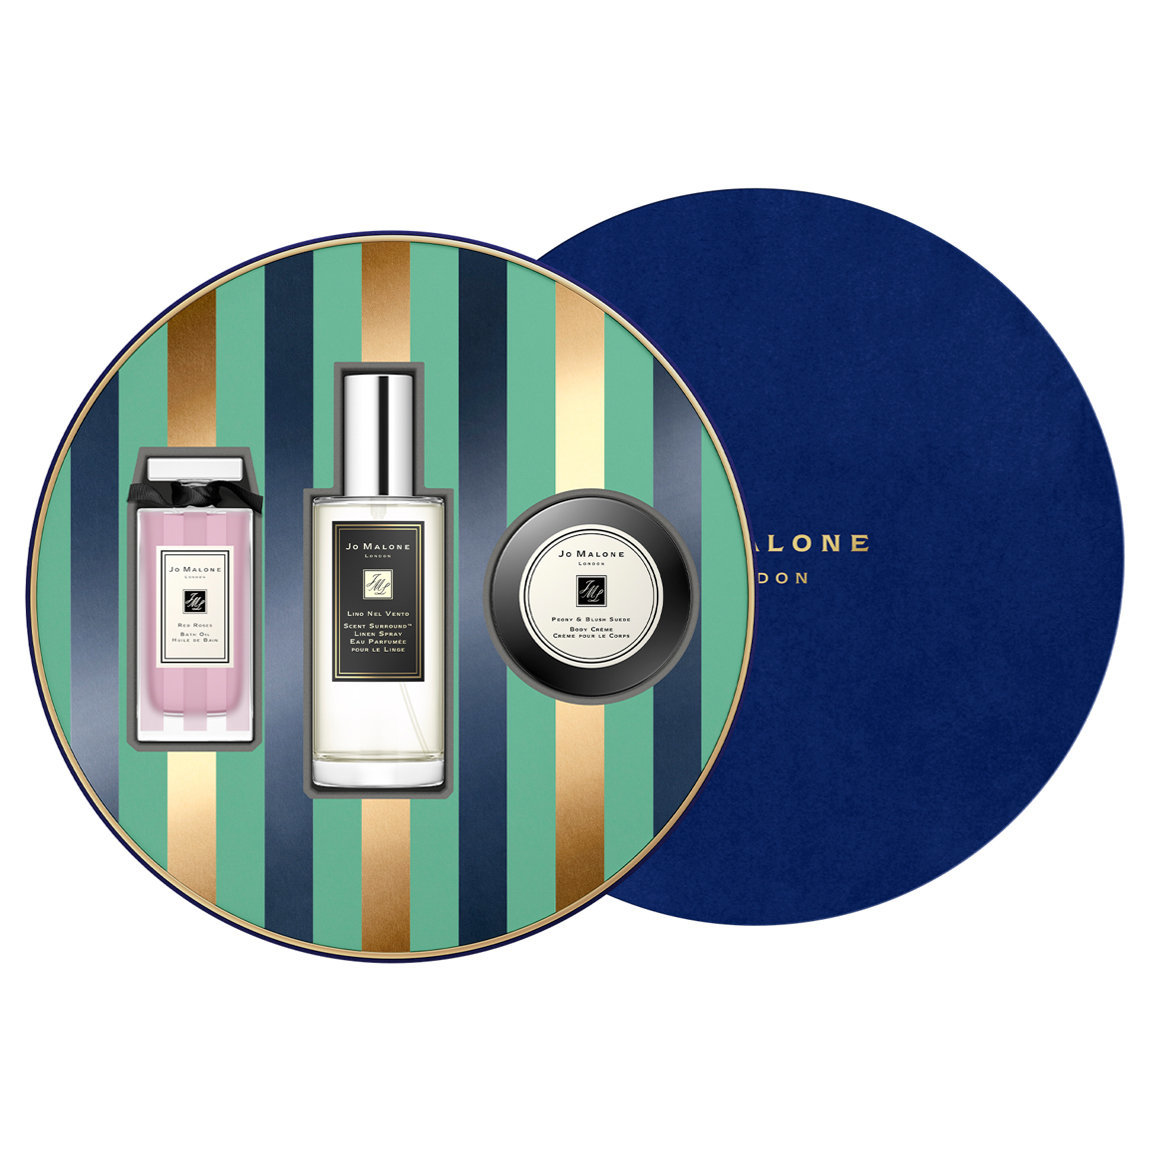 Jo Malone London Scented Bedtime Collection product swatch.